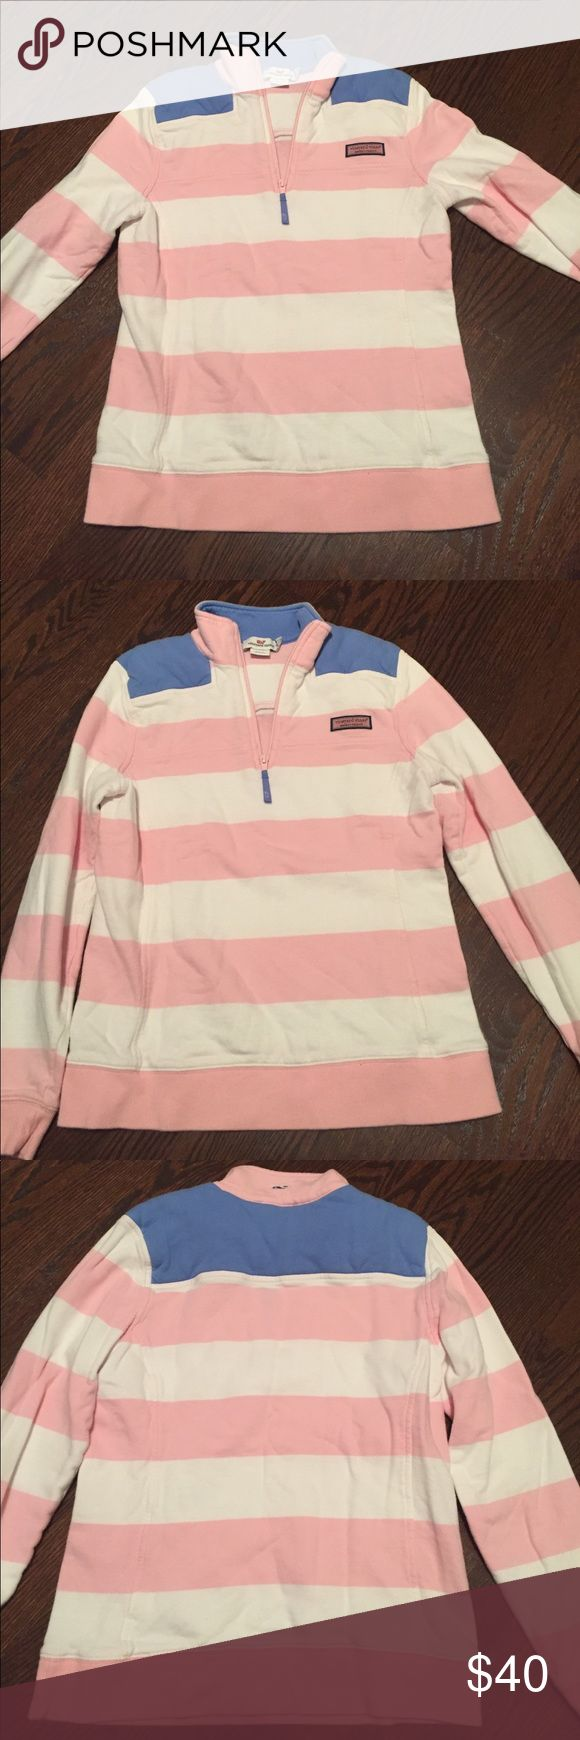 Women's Vineyard Vines Shep Shirt Great summer pullover! Worn a couple of times, but in great conditions and no signs of wear. Vineyard Vines Tops Sweatshirts & Hoodies